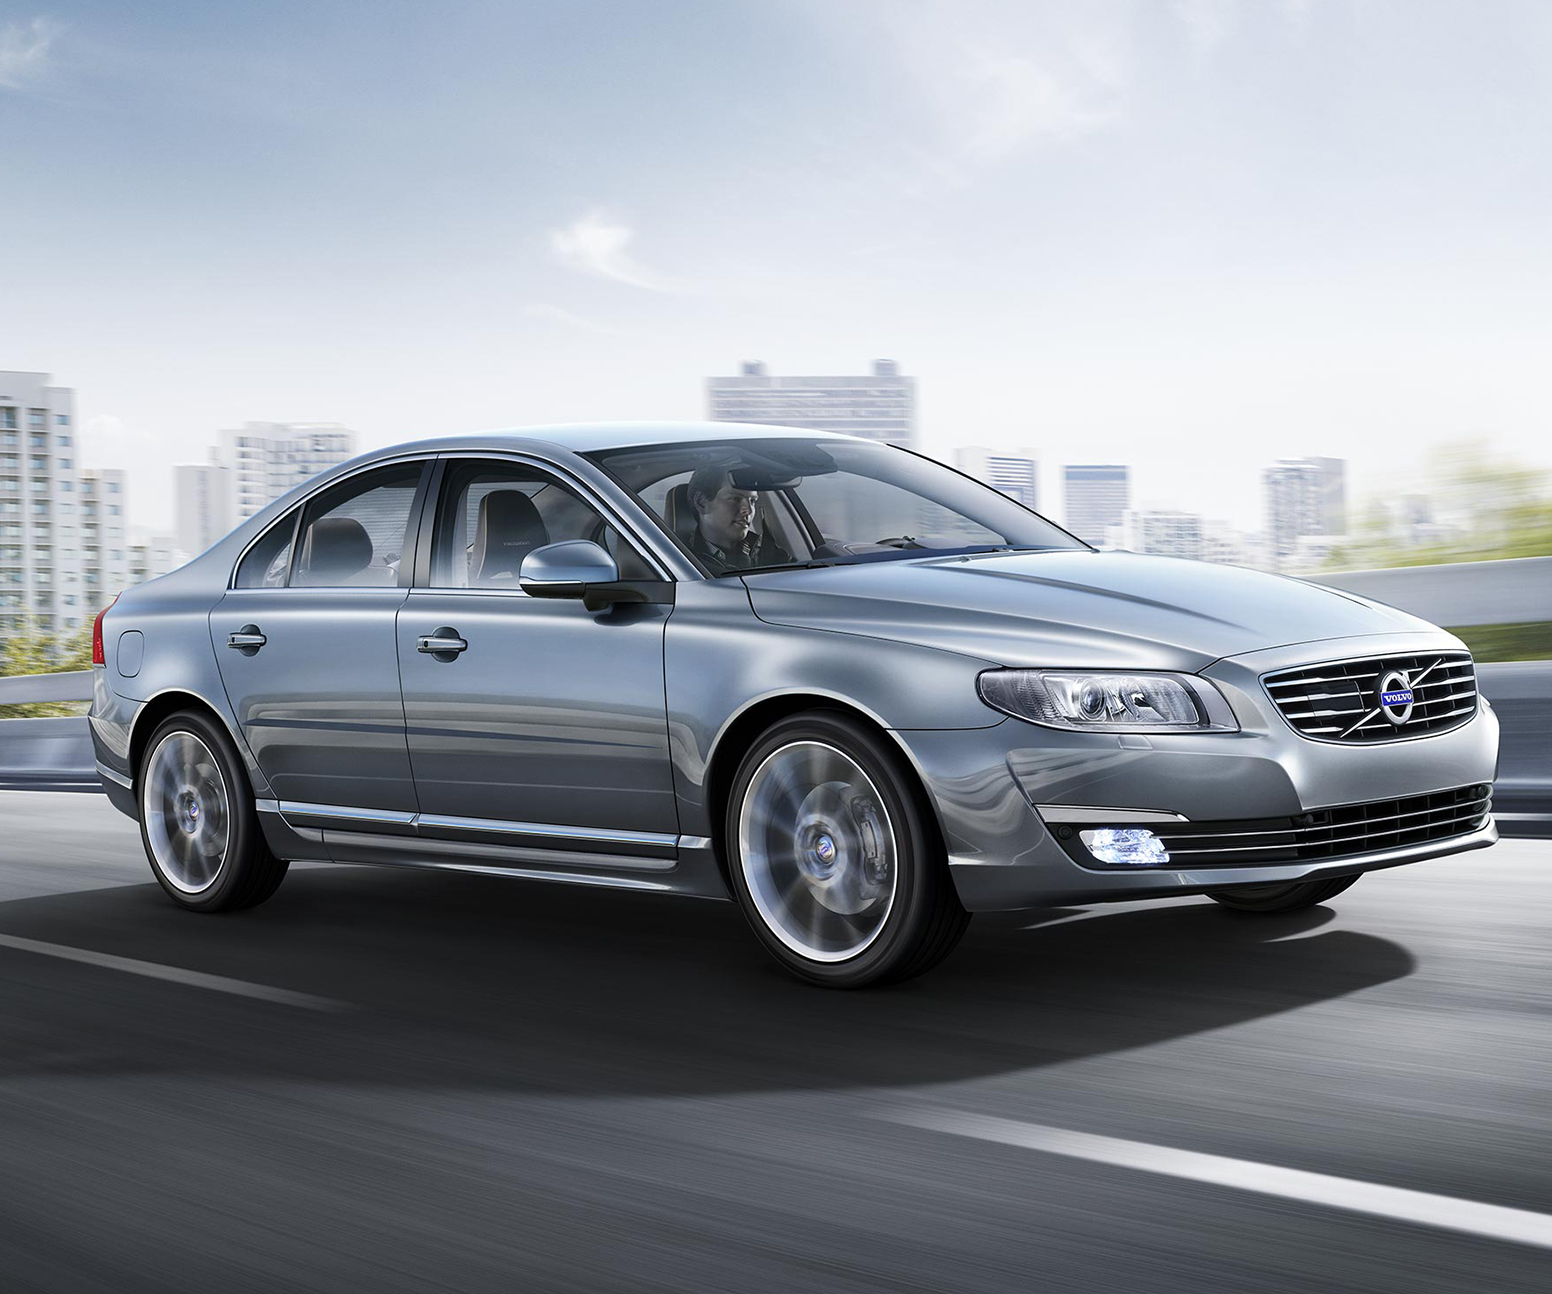 Volvo Auto Sales: New Volvo S80 For Sale In Sydney